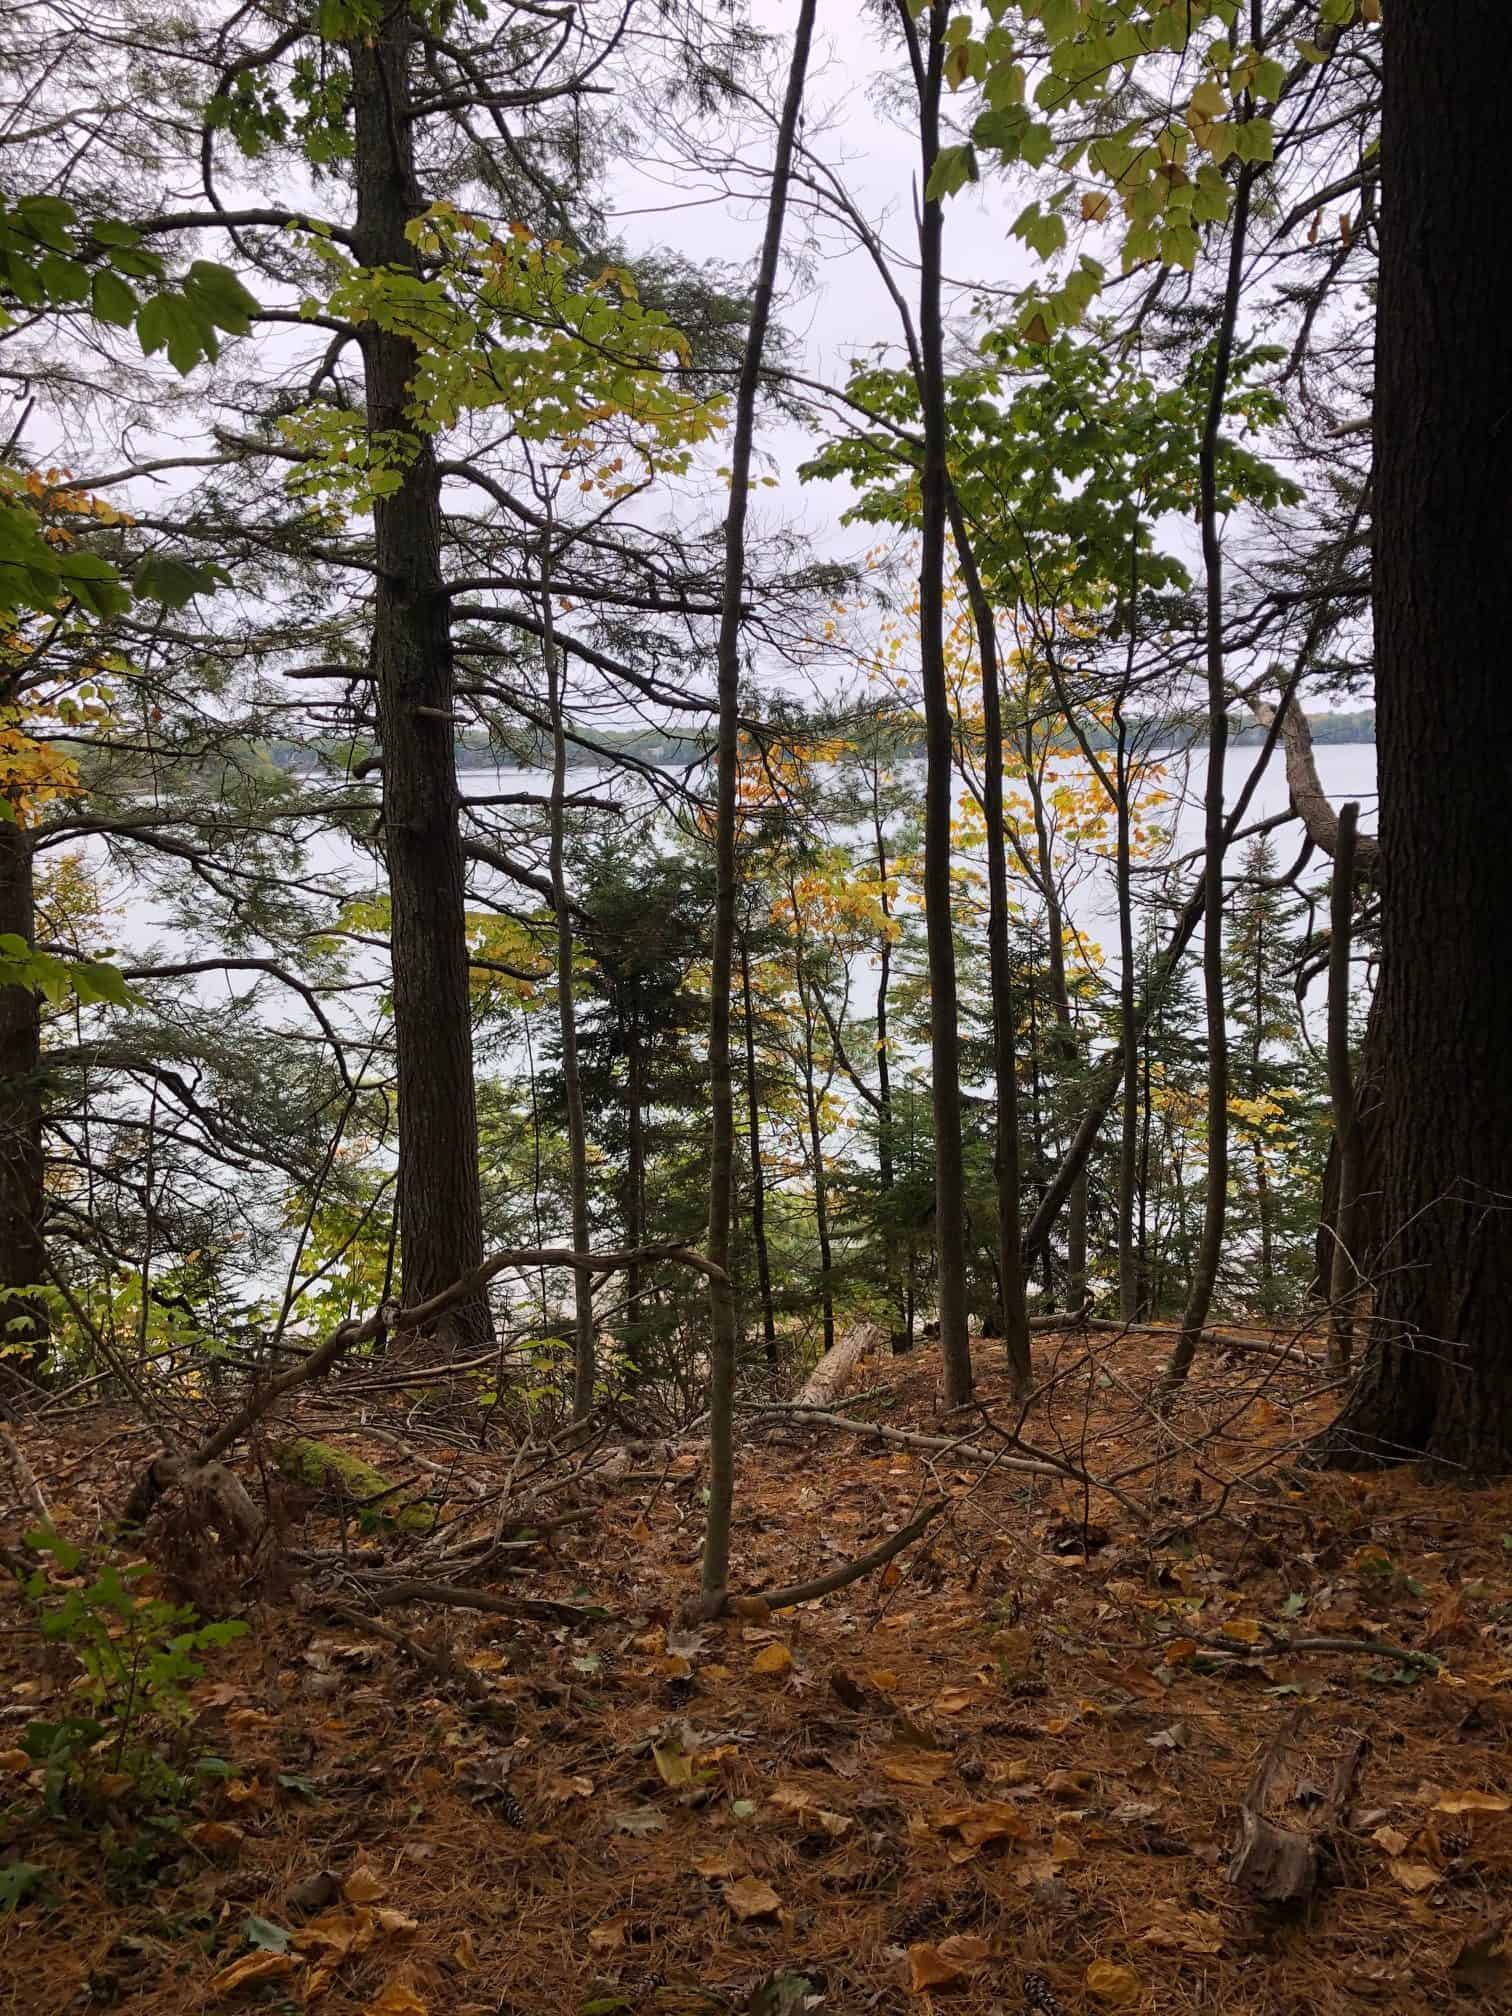 Wolfe's Neck woods State park with a view of Casco Bay behind the trees, Maine